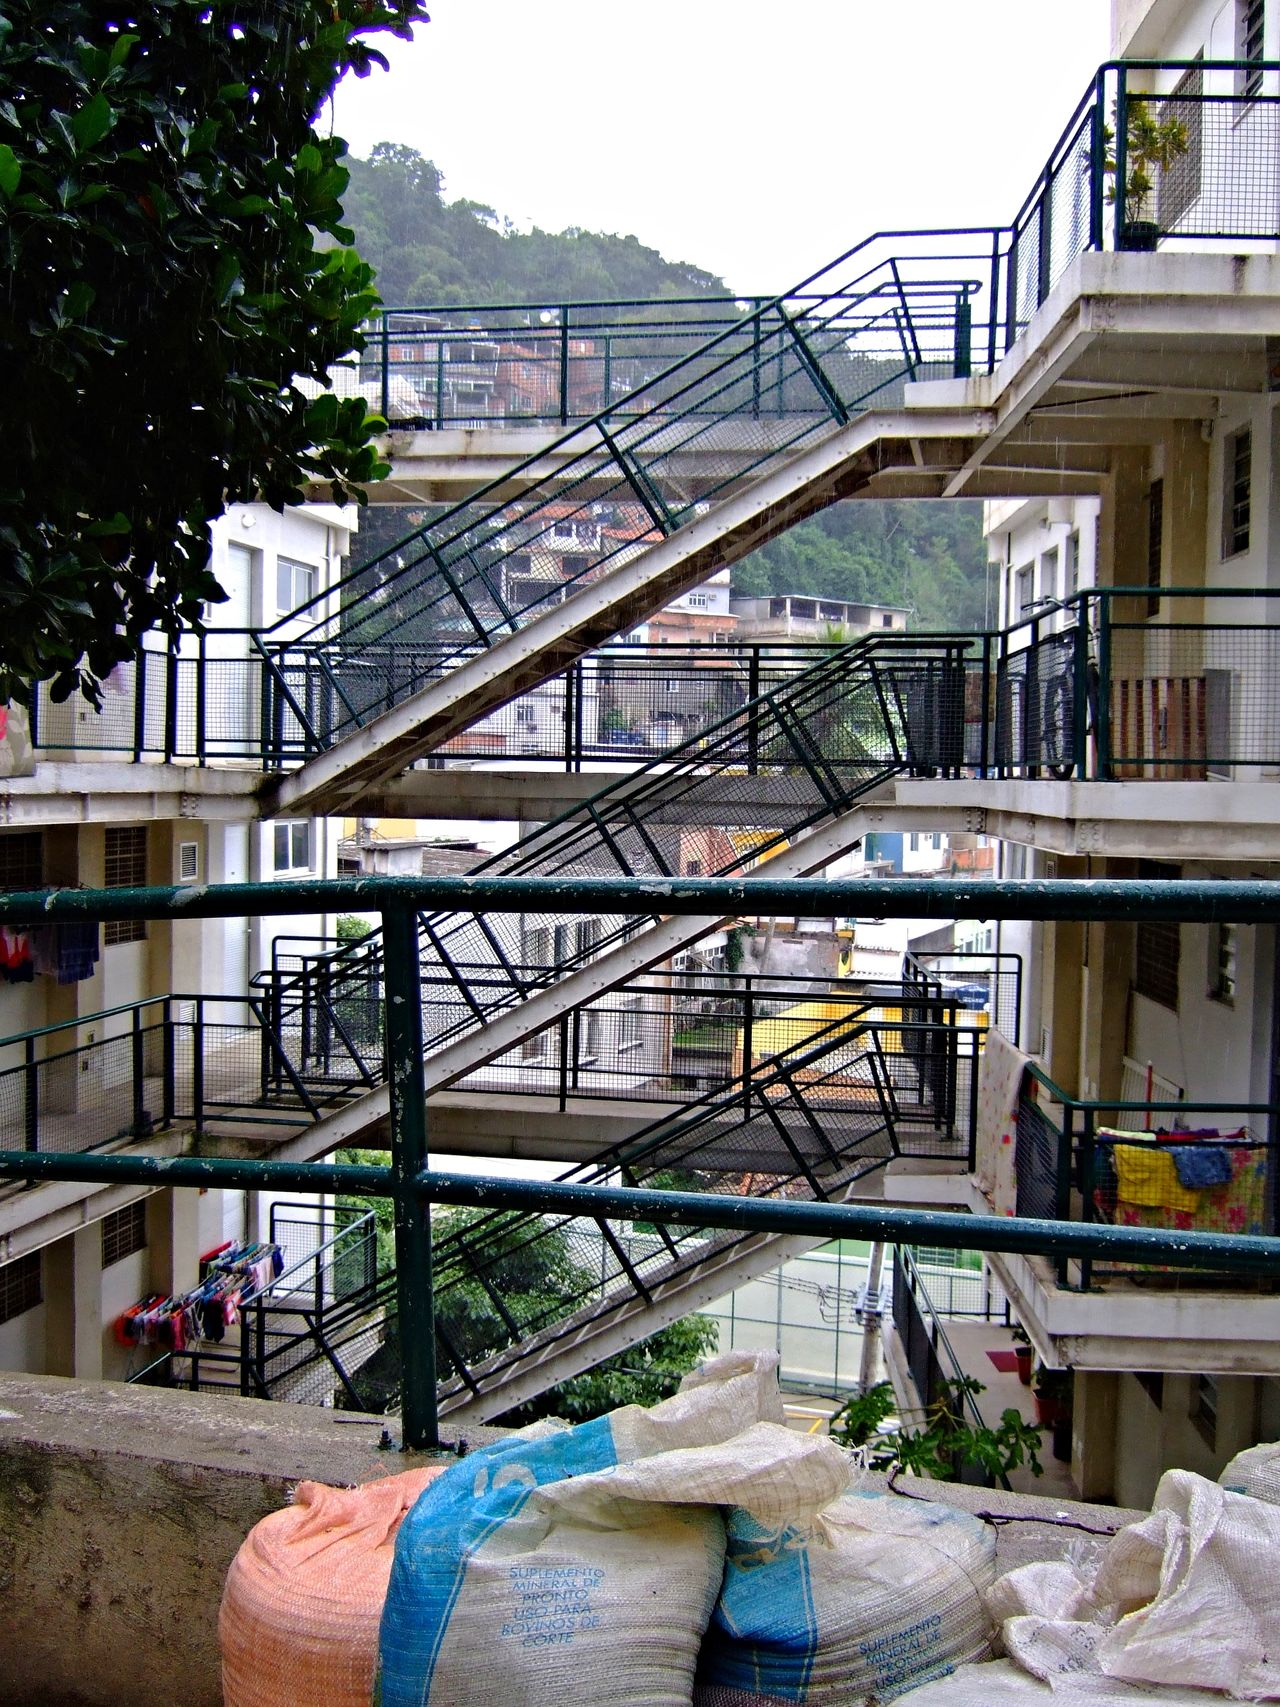 Architecture Building Exterior Built Structure Business Finance And Industry City Day Favela No People Outdoors Tree